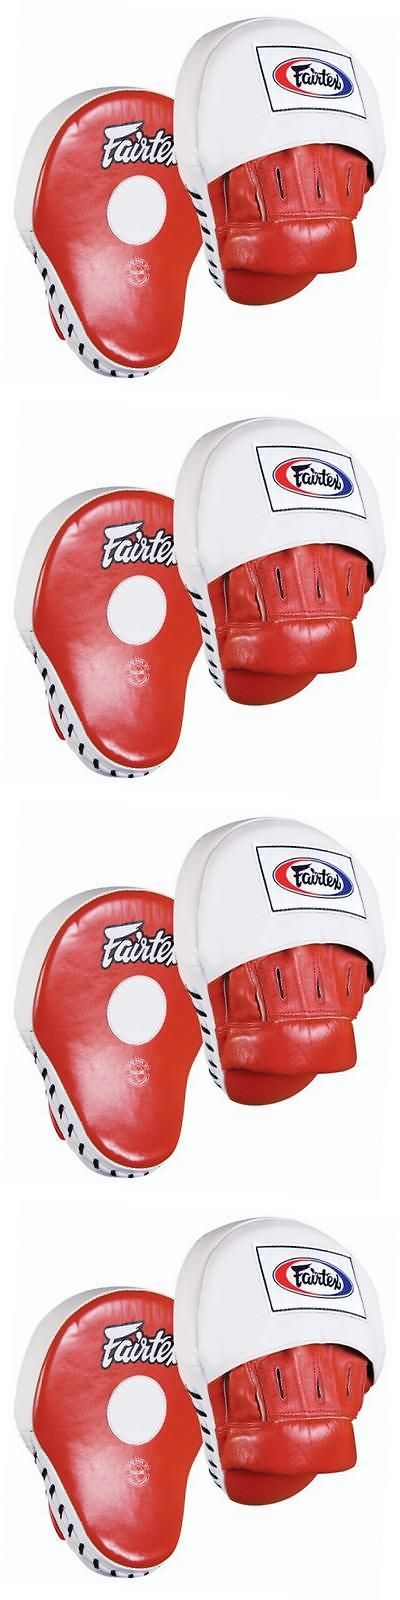 Strike Pads and Mitts 179789: Fairtex Contoured Boxing Mma Muay Thai Karate Training Target Focus Punch Pad -> BUY IT NOW ONLY: $137.5 on eBay!